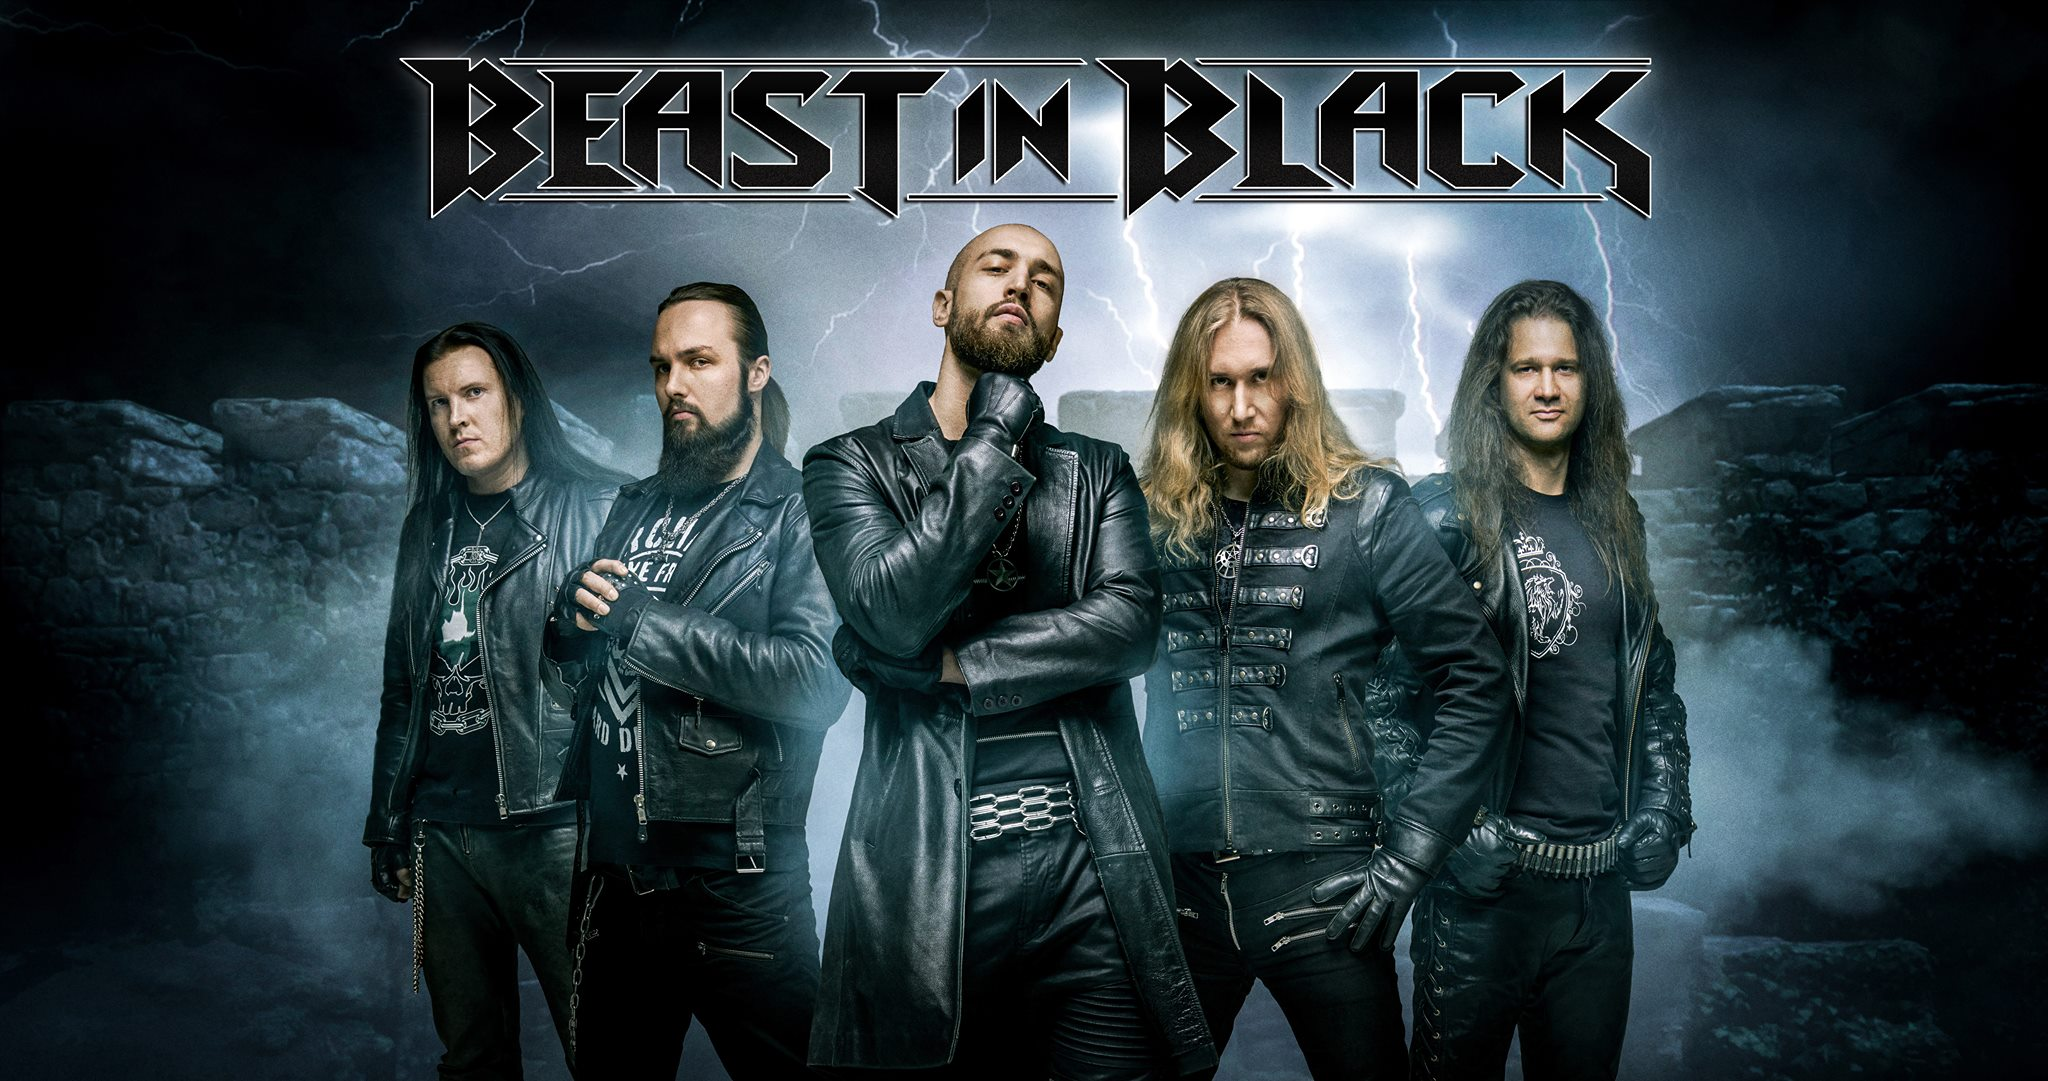 BEAST IN BLACK picture